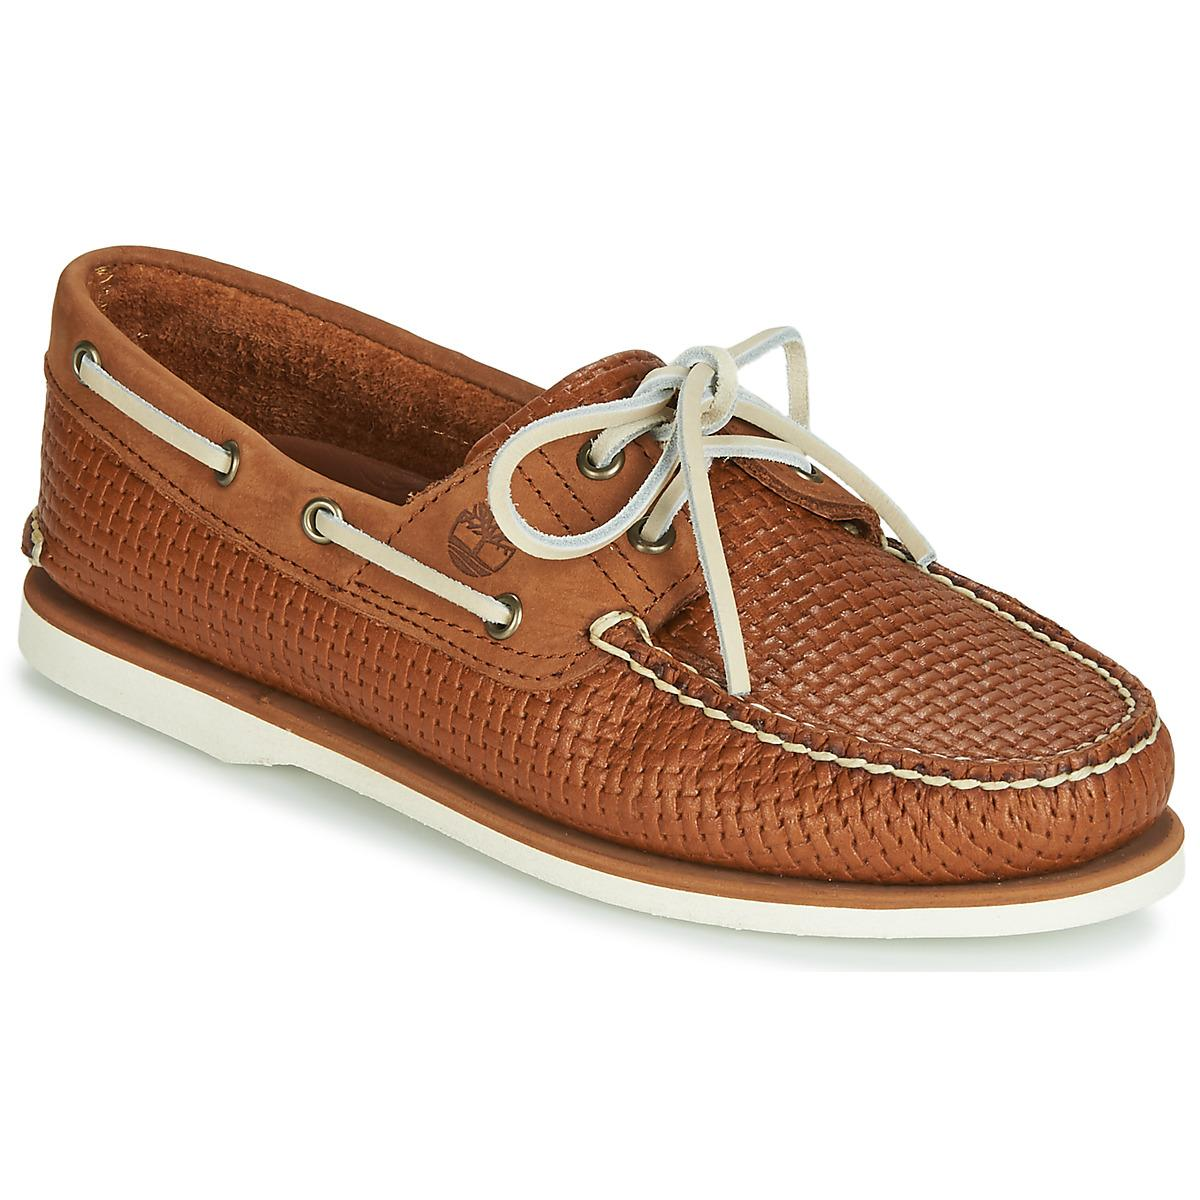 167c0437081e0 Timberland Classic Boat 2 Eye Boat Shoes in Brown for Men - Lyst